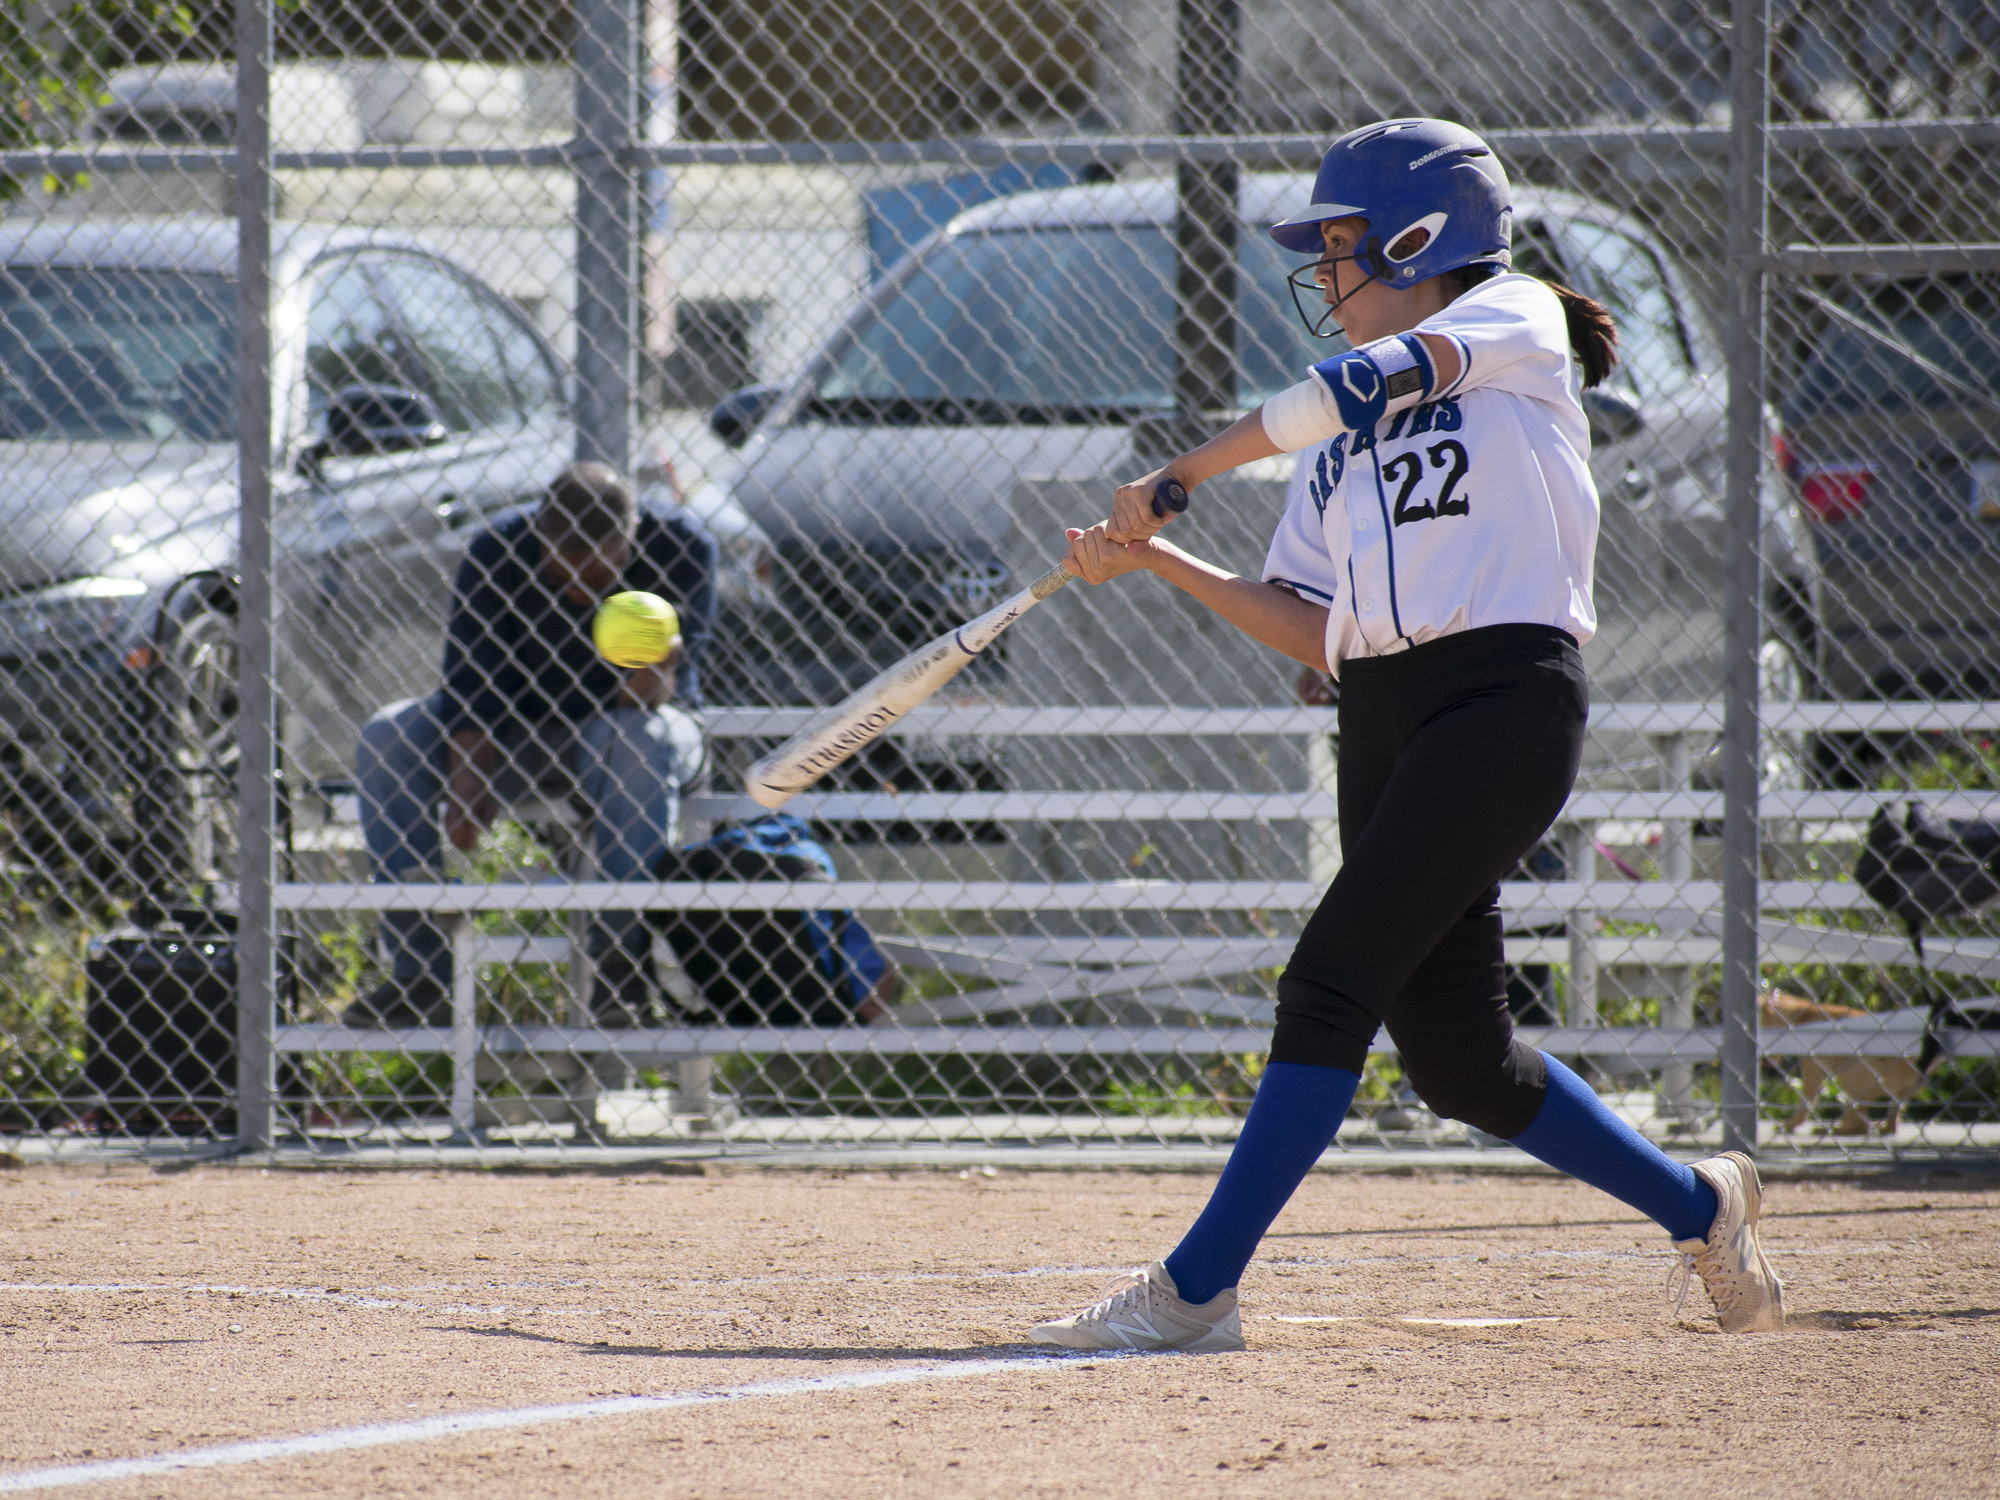 Santa Monica Corsairs Erika Soto (#22) swings during a softball game against the Moorpark College Raiders on Tuesday, April 10 at the John Adams Middle School Field in Santa Monica, California. The game ended with an 11-8 loss for the Corsairs, further continuing their six-game loss. (Ethan Lauren/Corsair Photo)